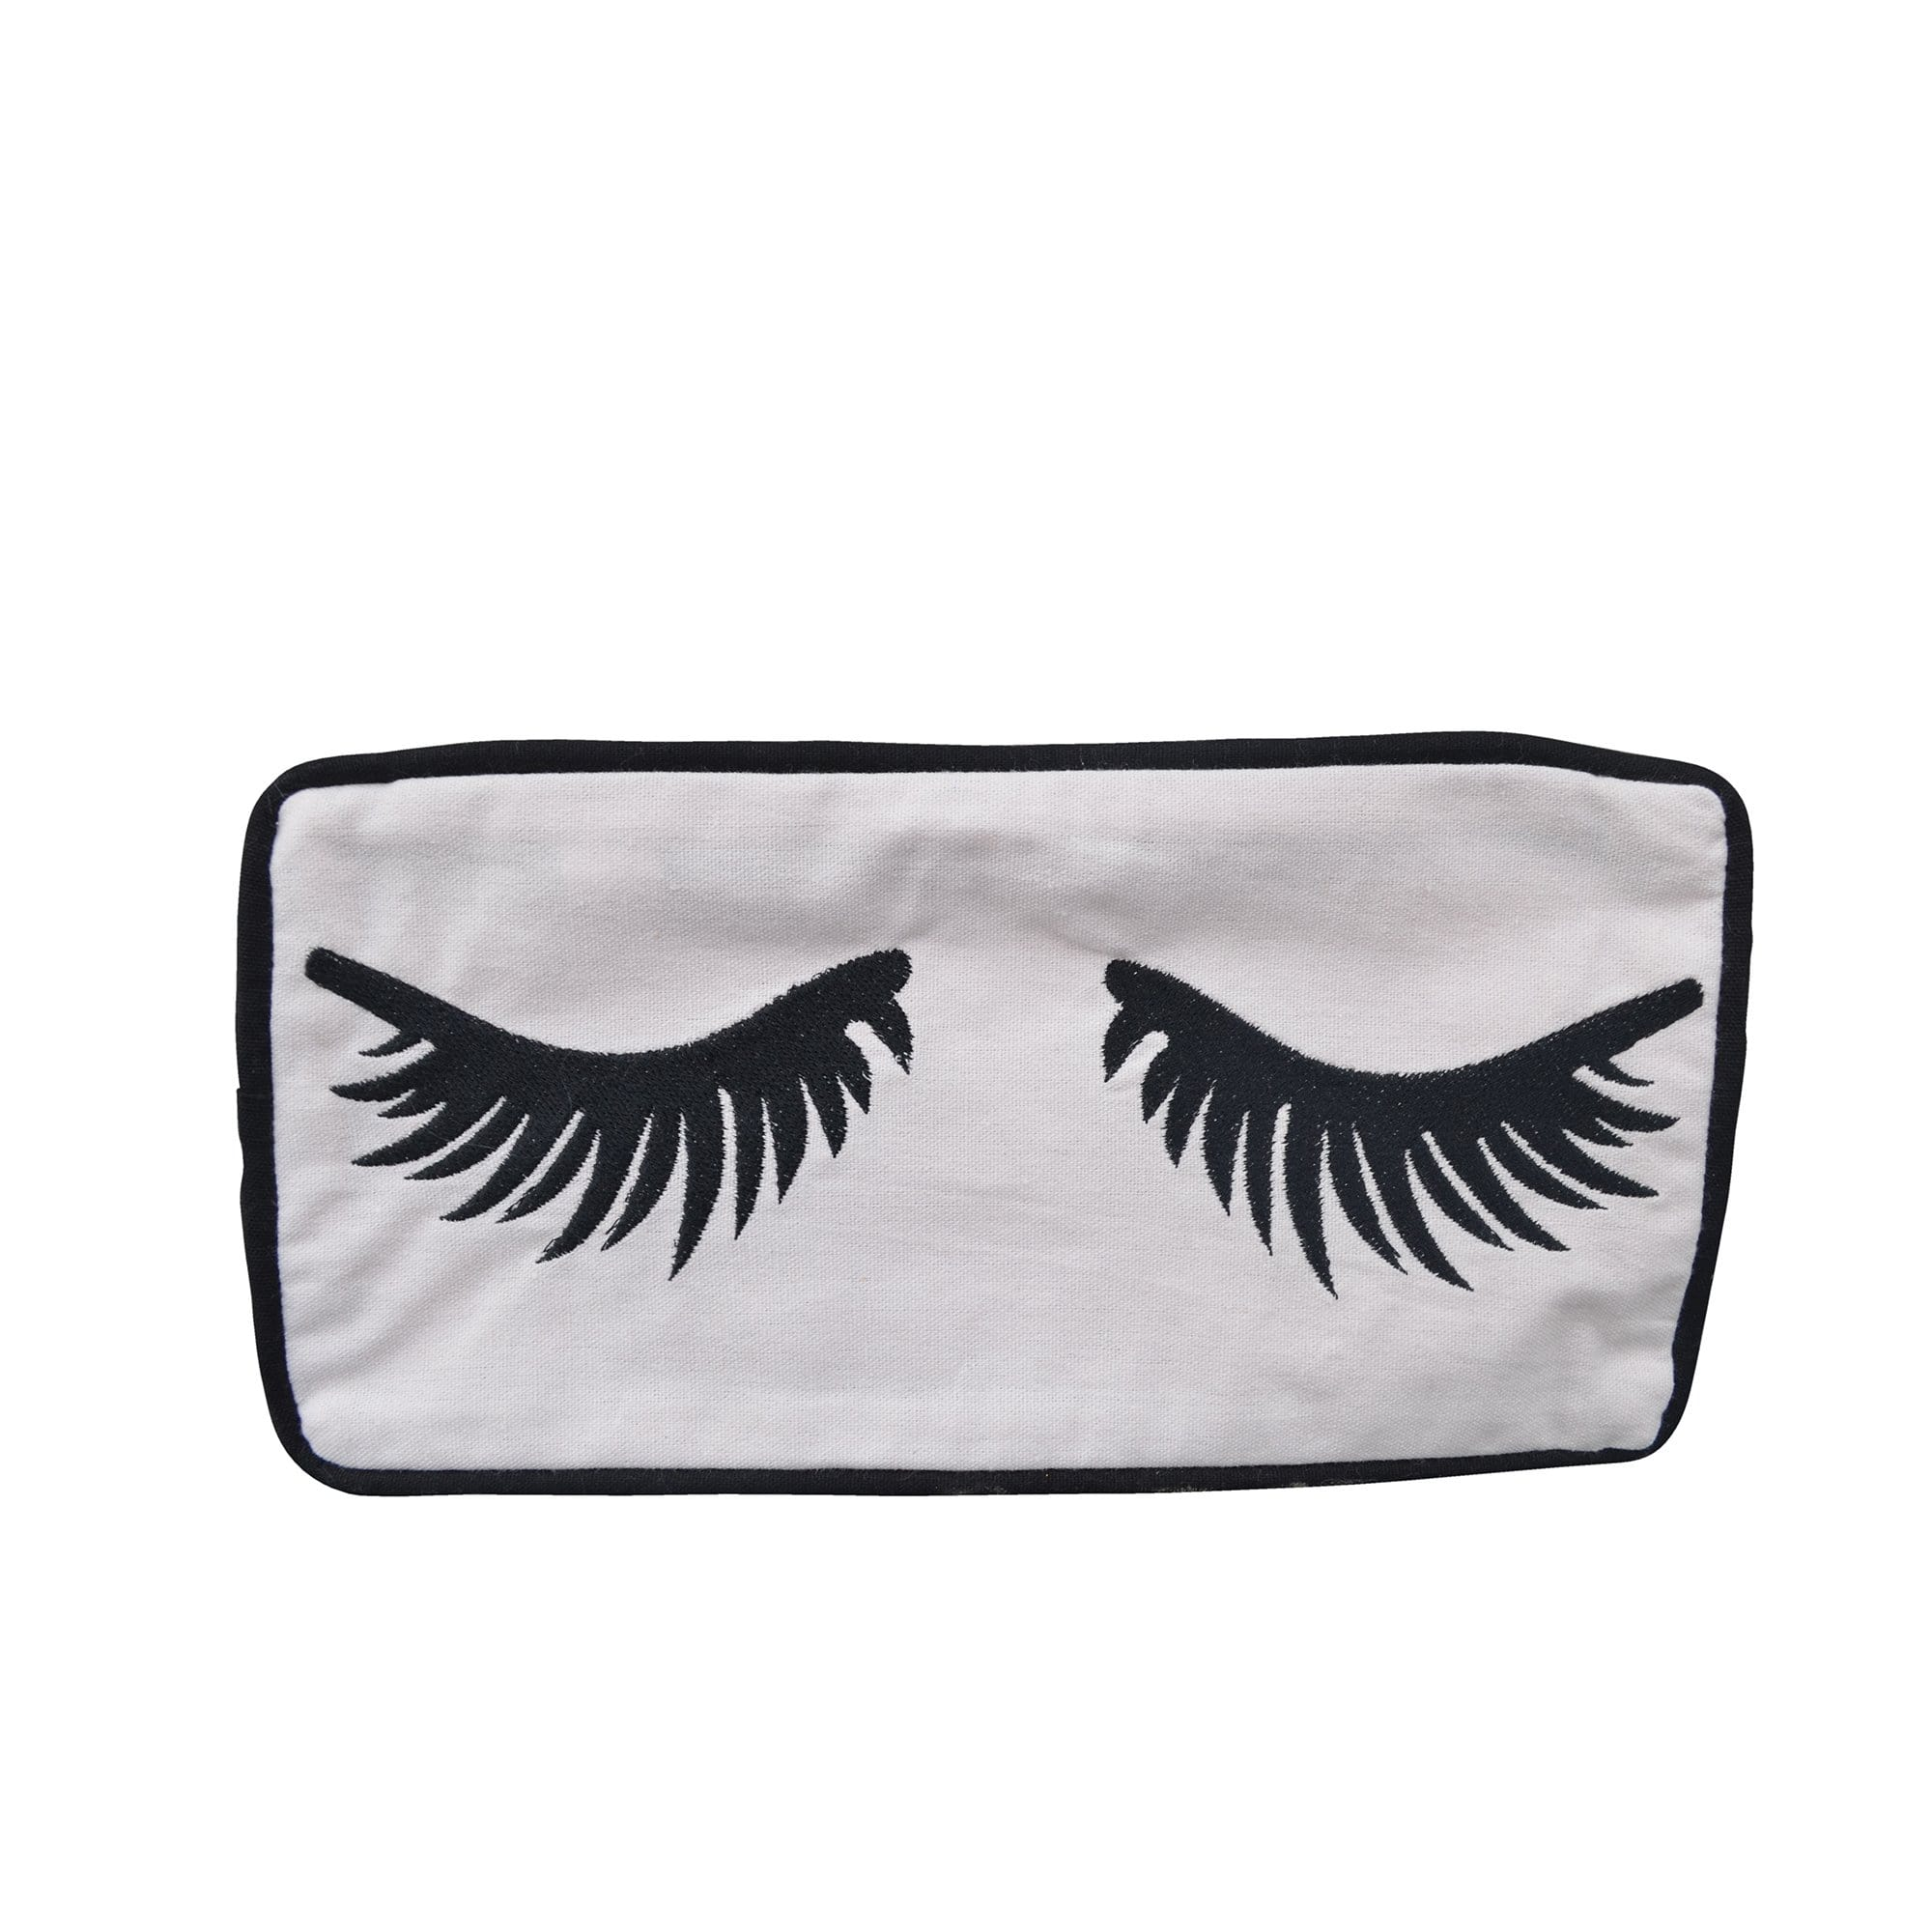 Candlelight Home Makeup Bags Eyelash Makeup Bag Pink 30cm 12PK